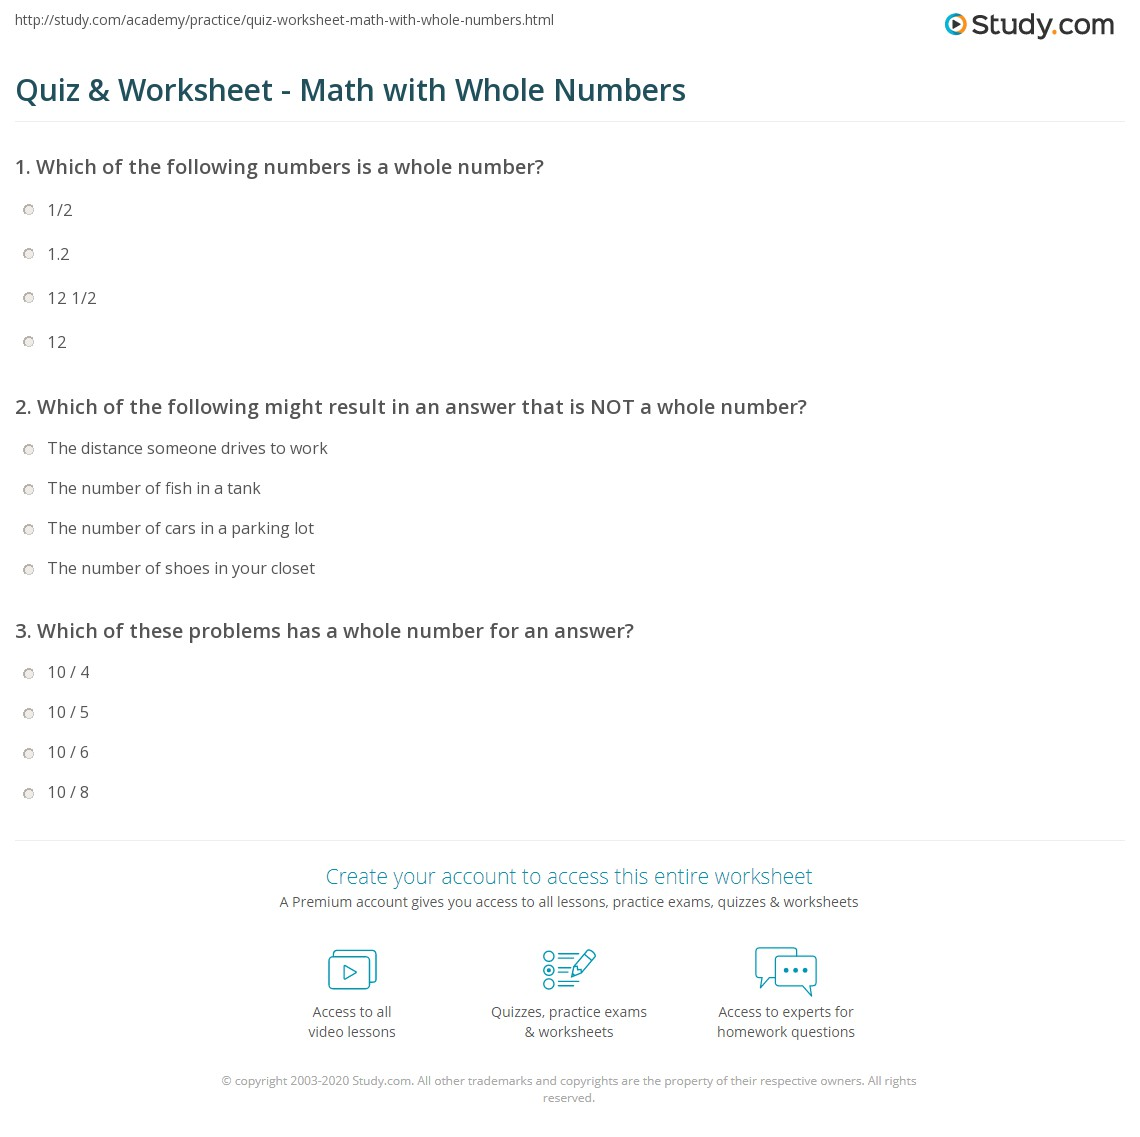 Quiz & Worksheet - Math with Whole Numbers | Study.com